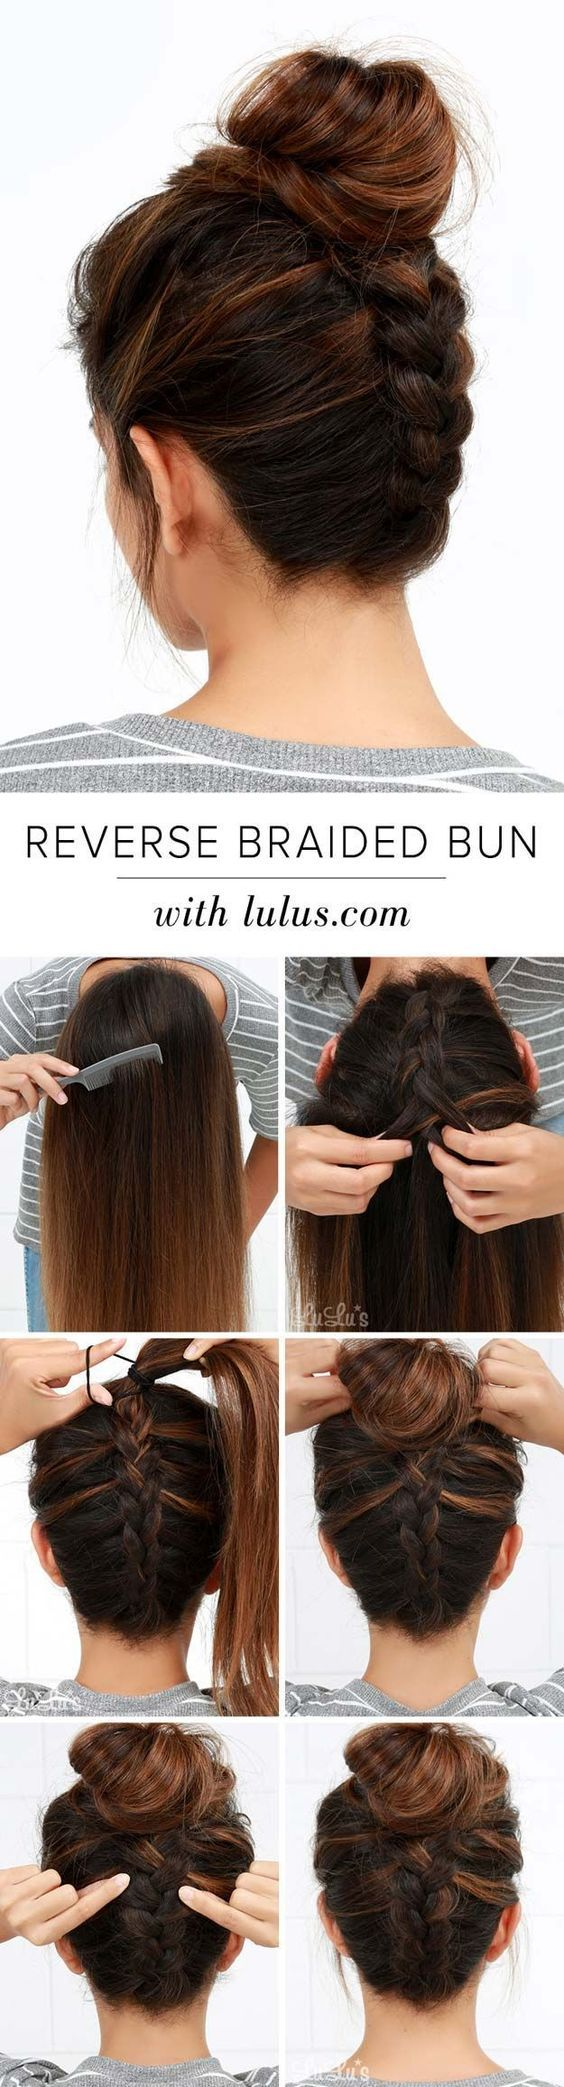 Hairstyles hairstyle hair style routine daily blogger